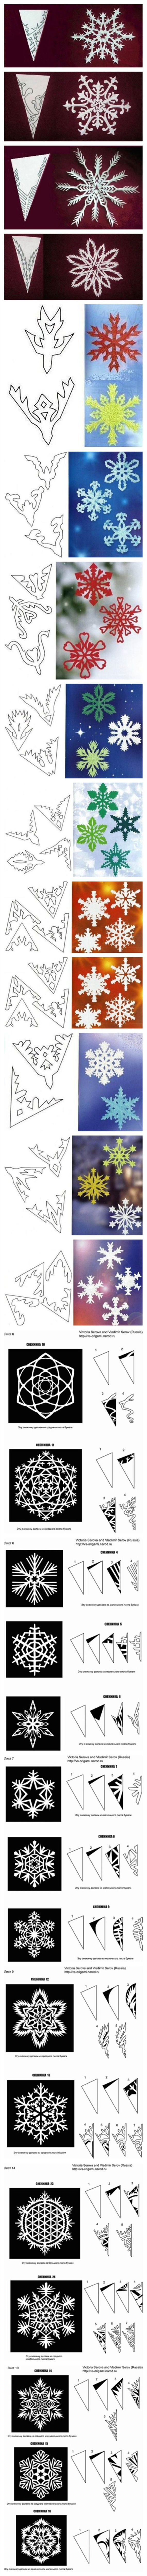 awesome snow flake cut out ideas